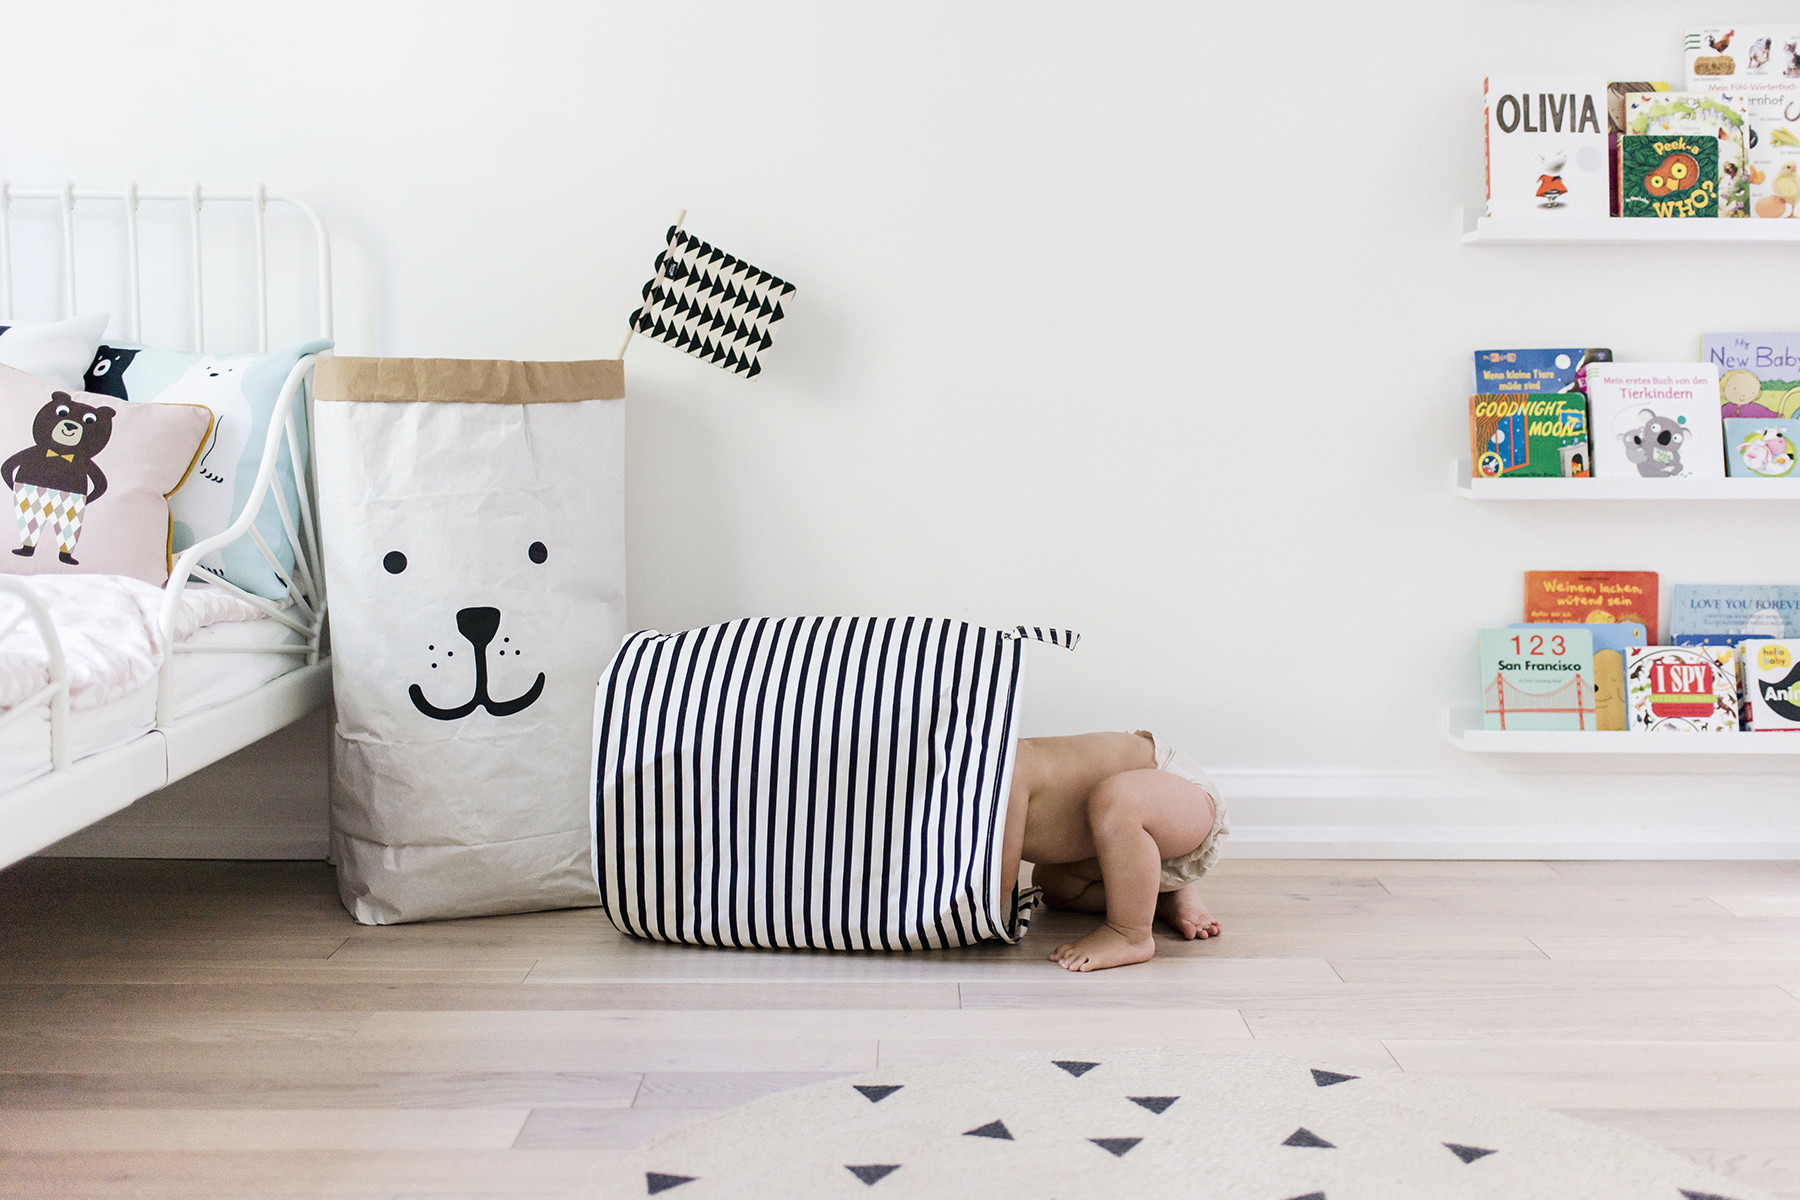 Modern Scandinavian toy storage - House Doctor, Tellkiddo | Happy Grey Lucky